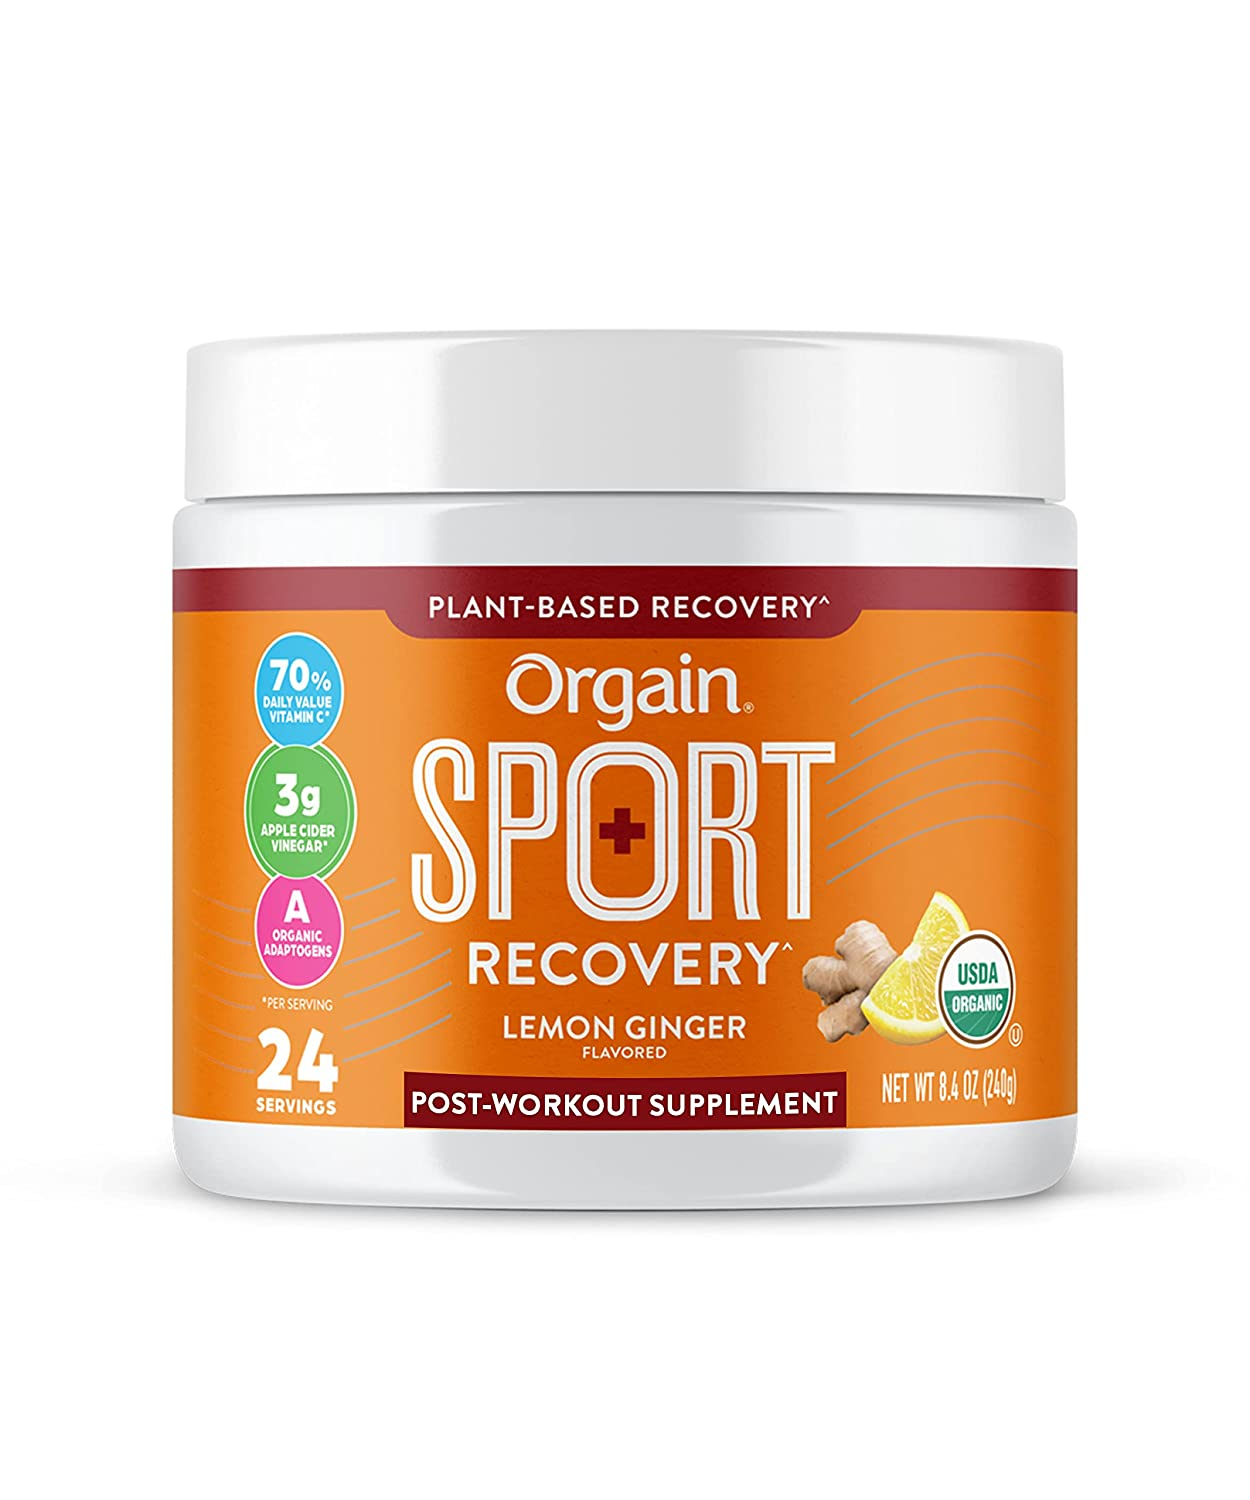 Orgain Lemonade 2021 Easy-to-use new Sport Recovery Post-Workout with A - Powder Made